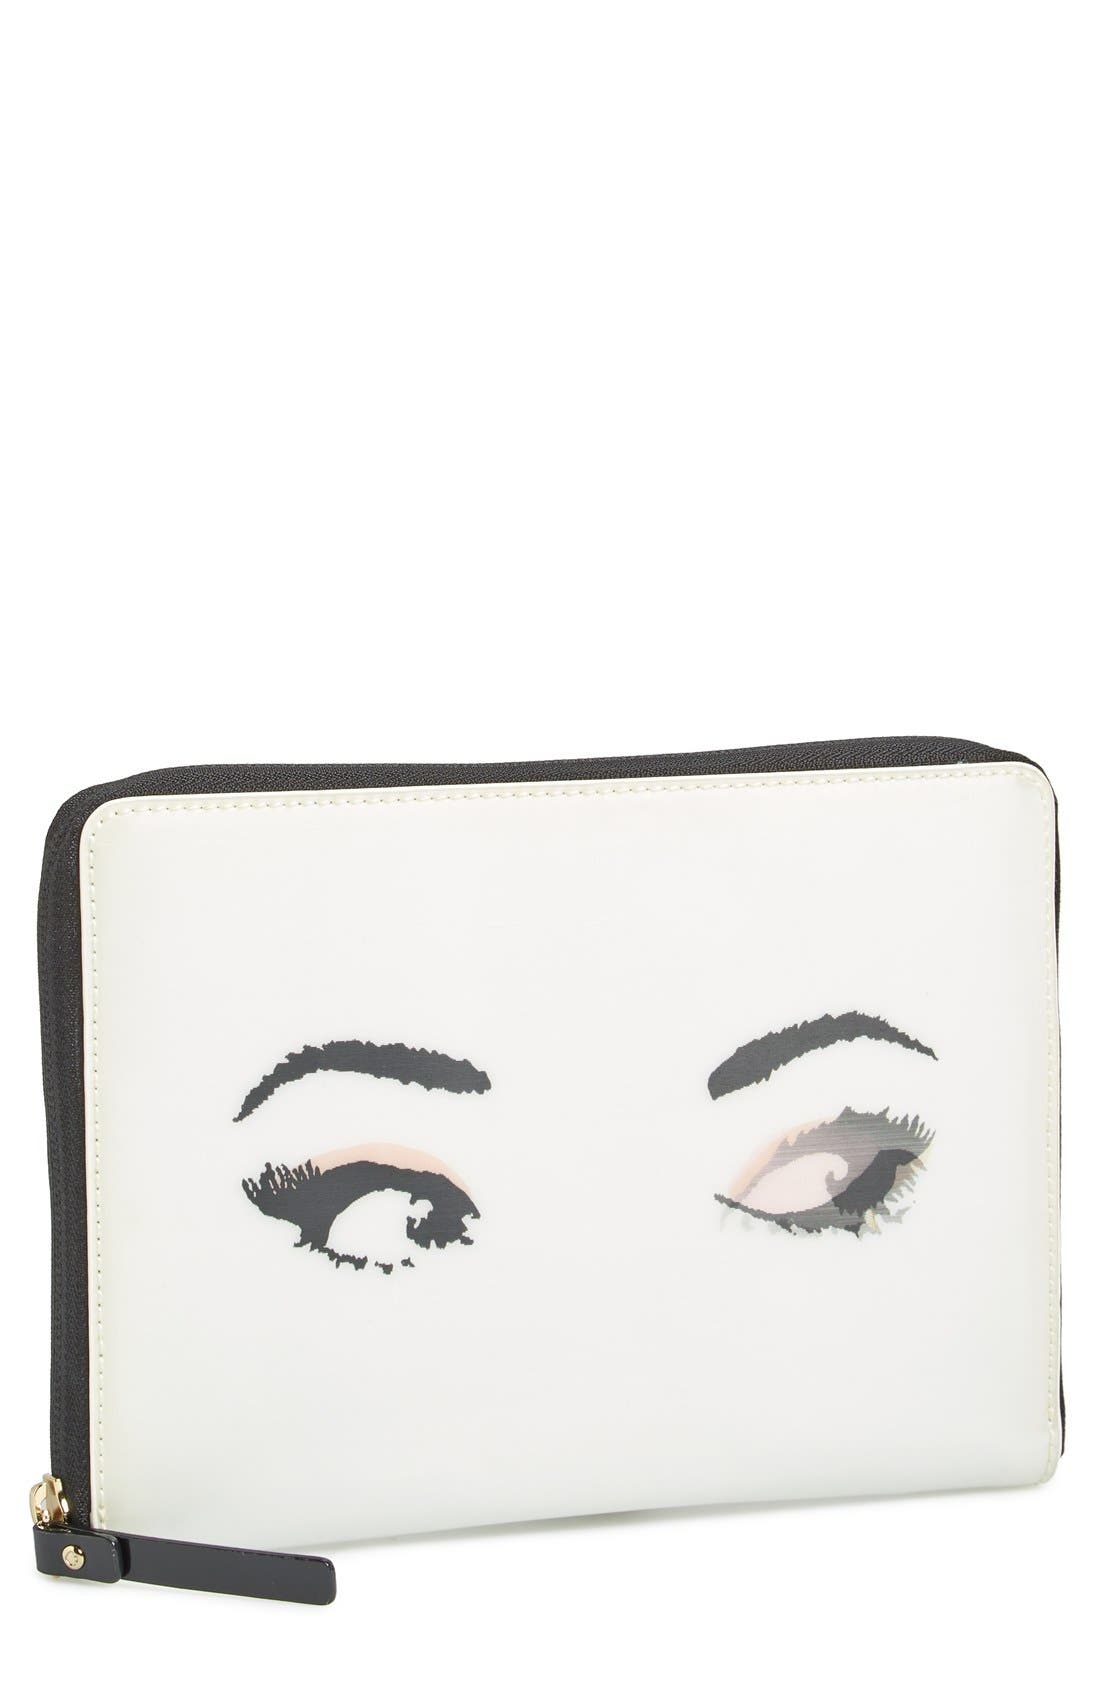 Alternate Image 1 Selected - kate spade new york 'lenticular eyes' iPad mini sleeve